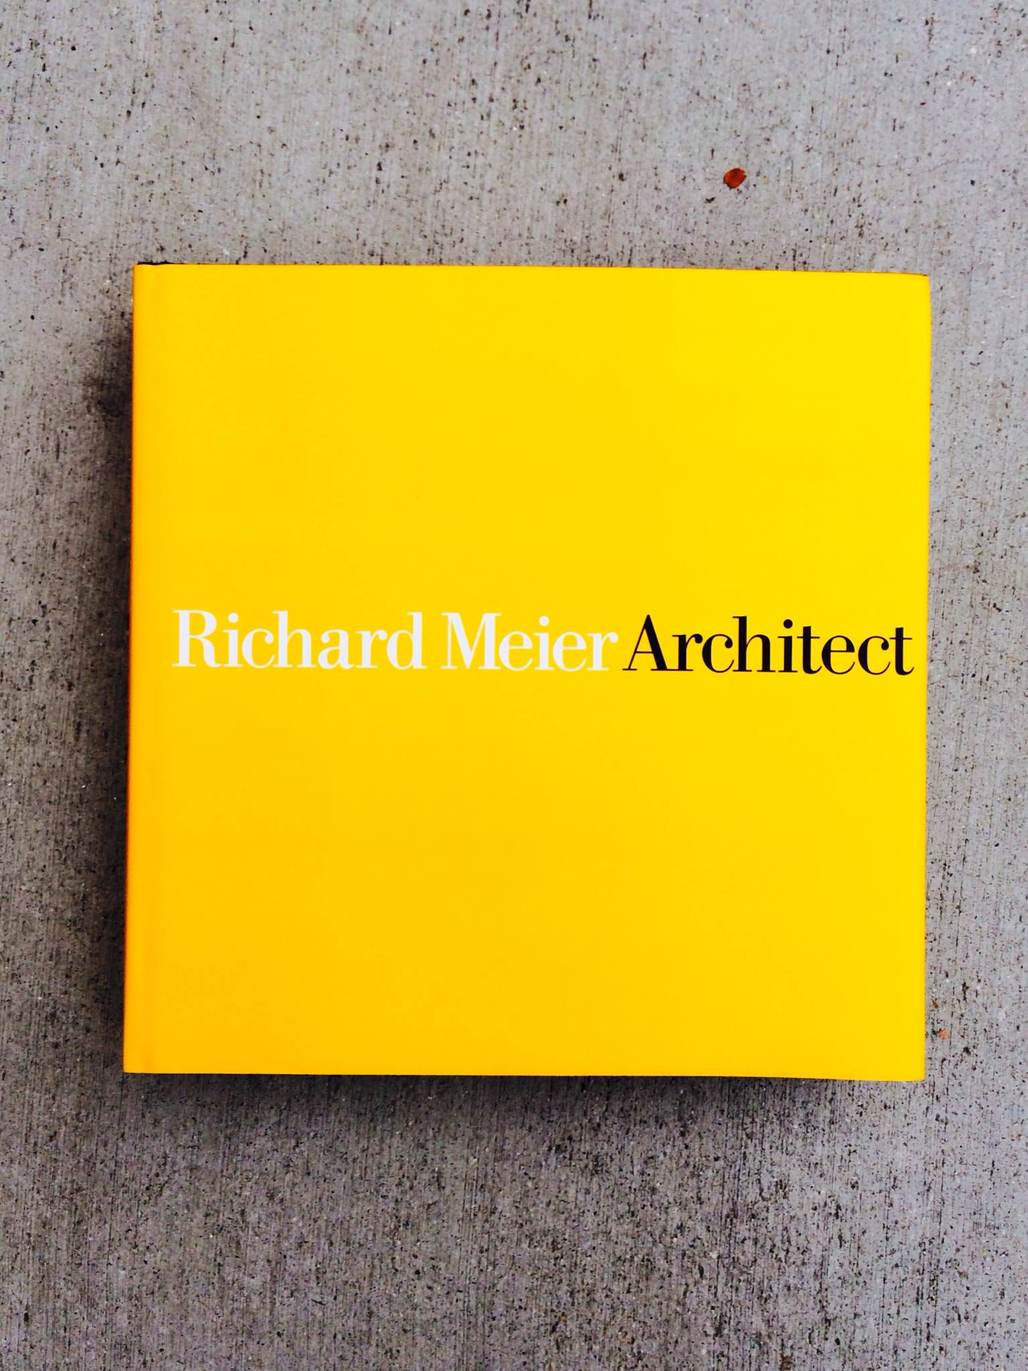 © Richard Meier Architect: Volume 6 by Richard Meier, Rizzoli New York, 2014. Photo by author.